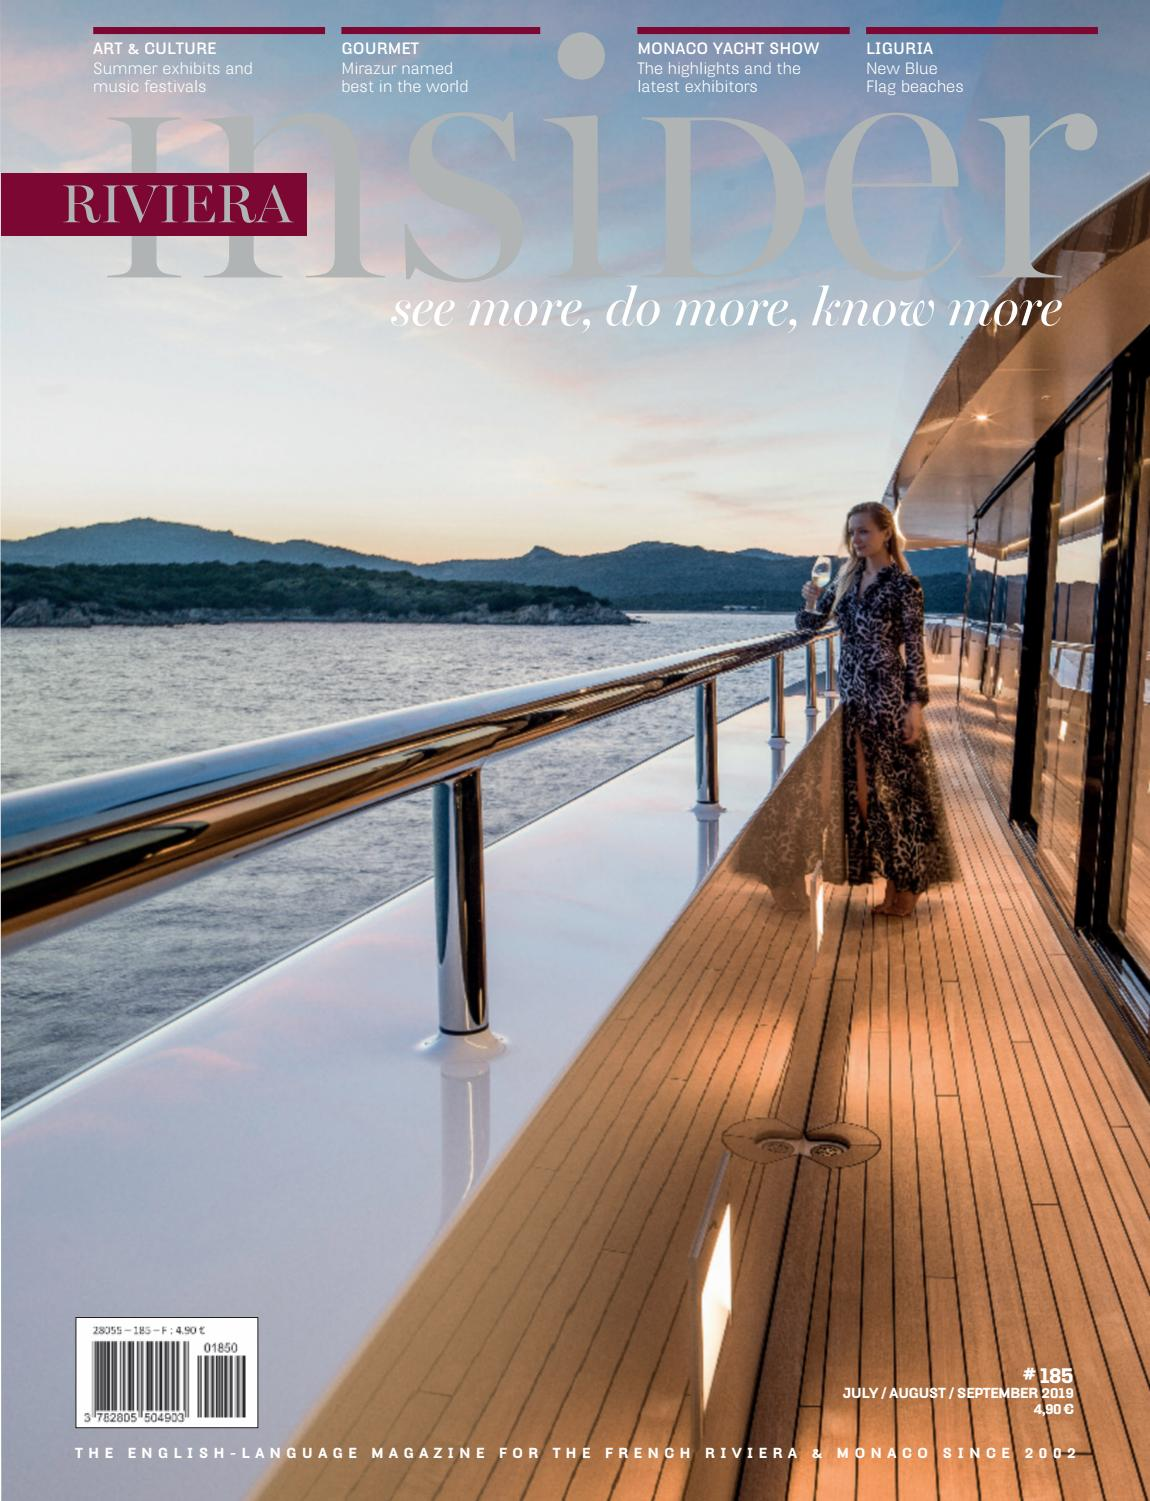 Euromaster Salon De Provence Riviera Insider July August September 2019 By Riviera